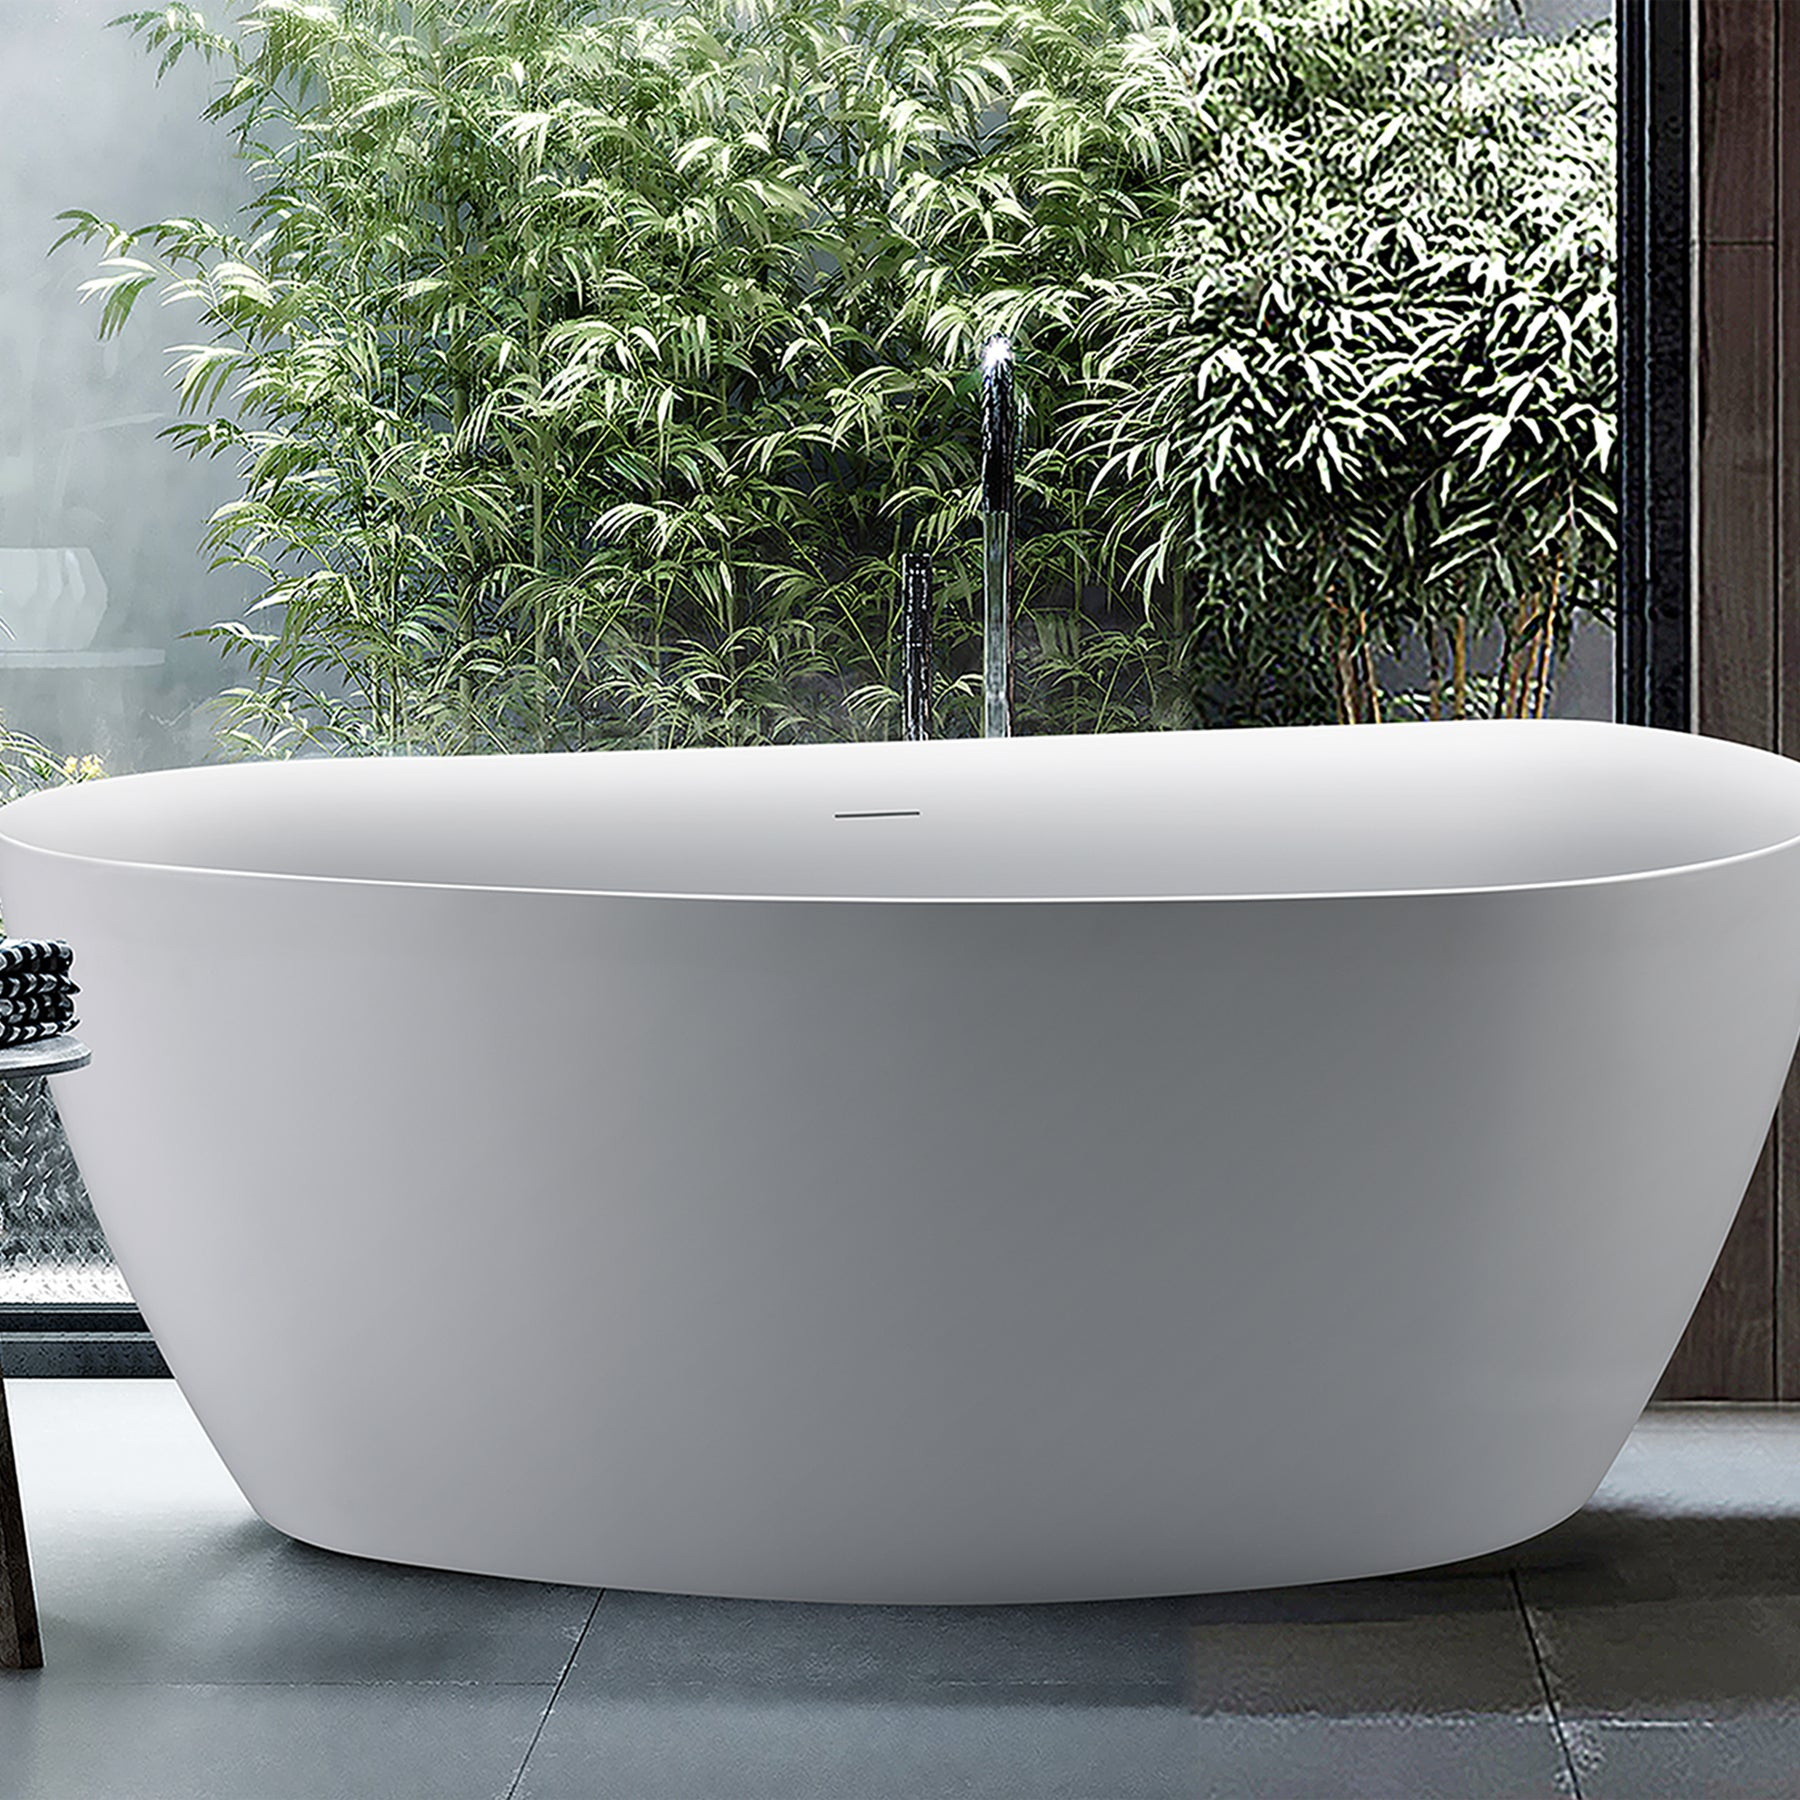 Is a Freestanding Tub Worth It? Of Course!